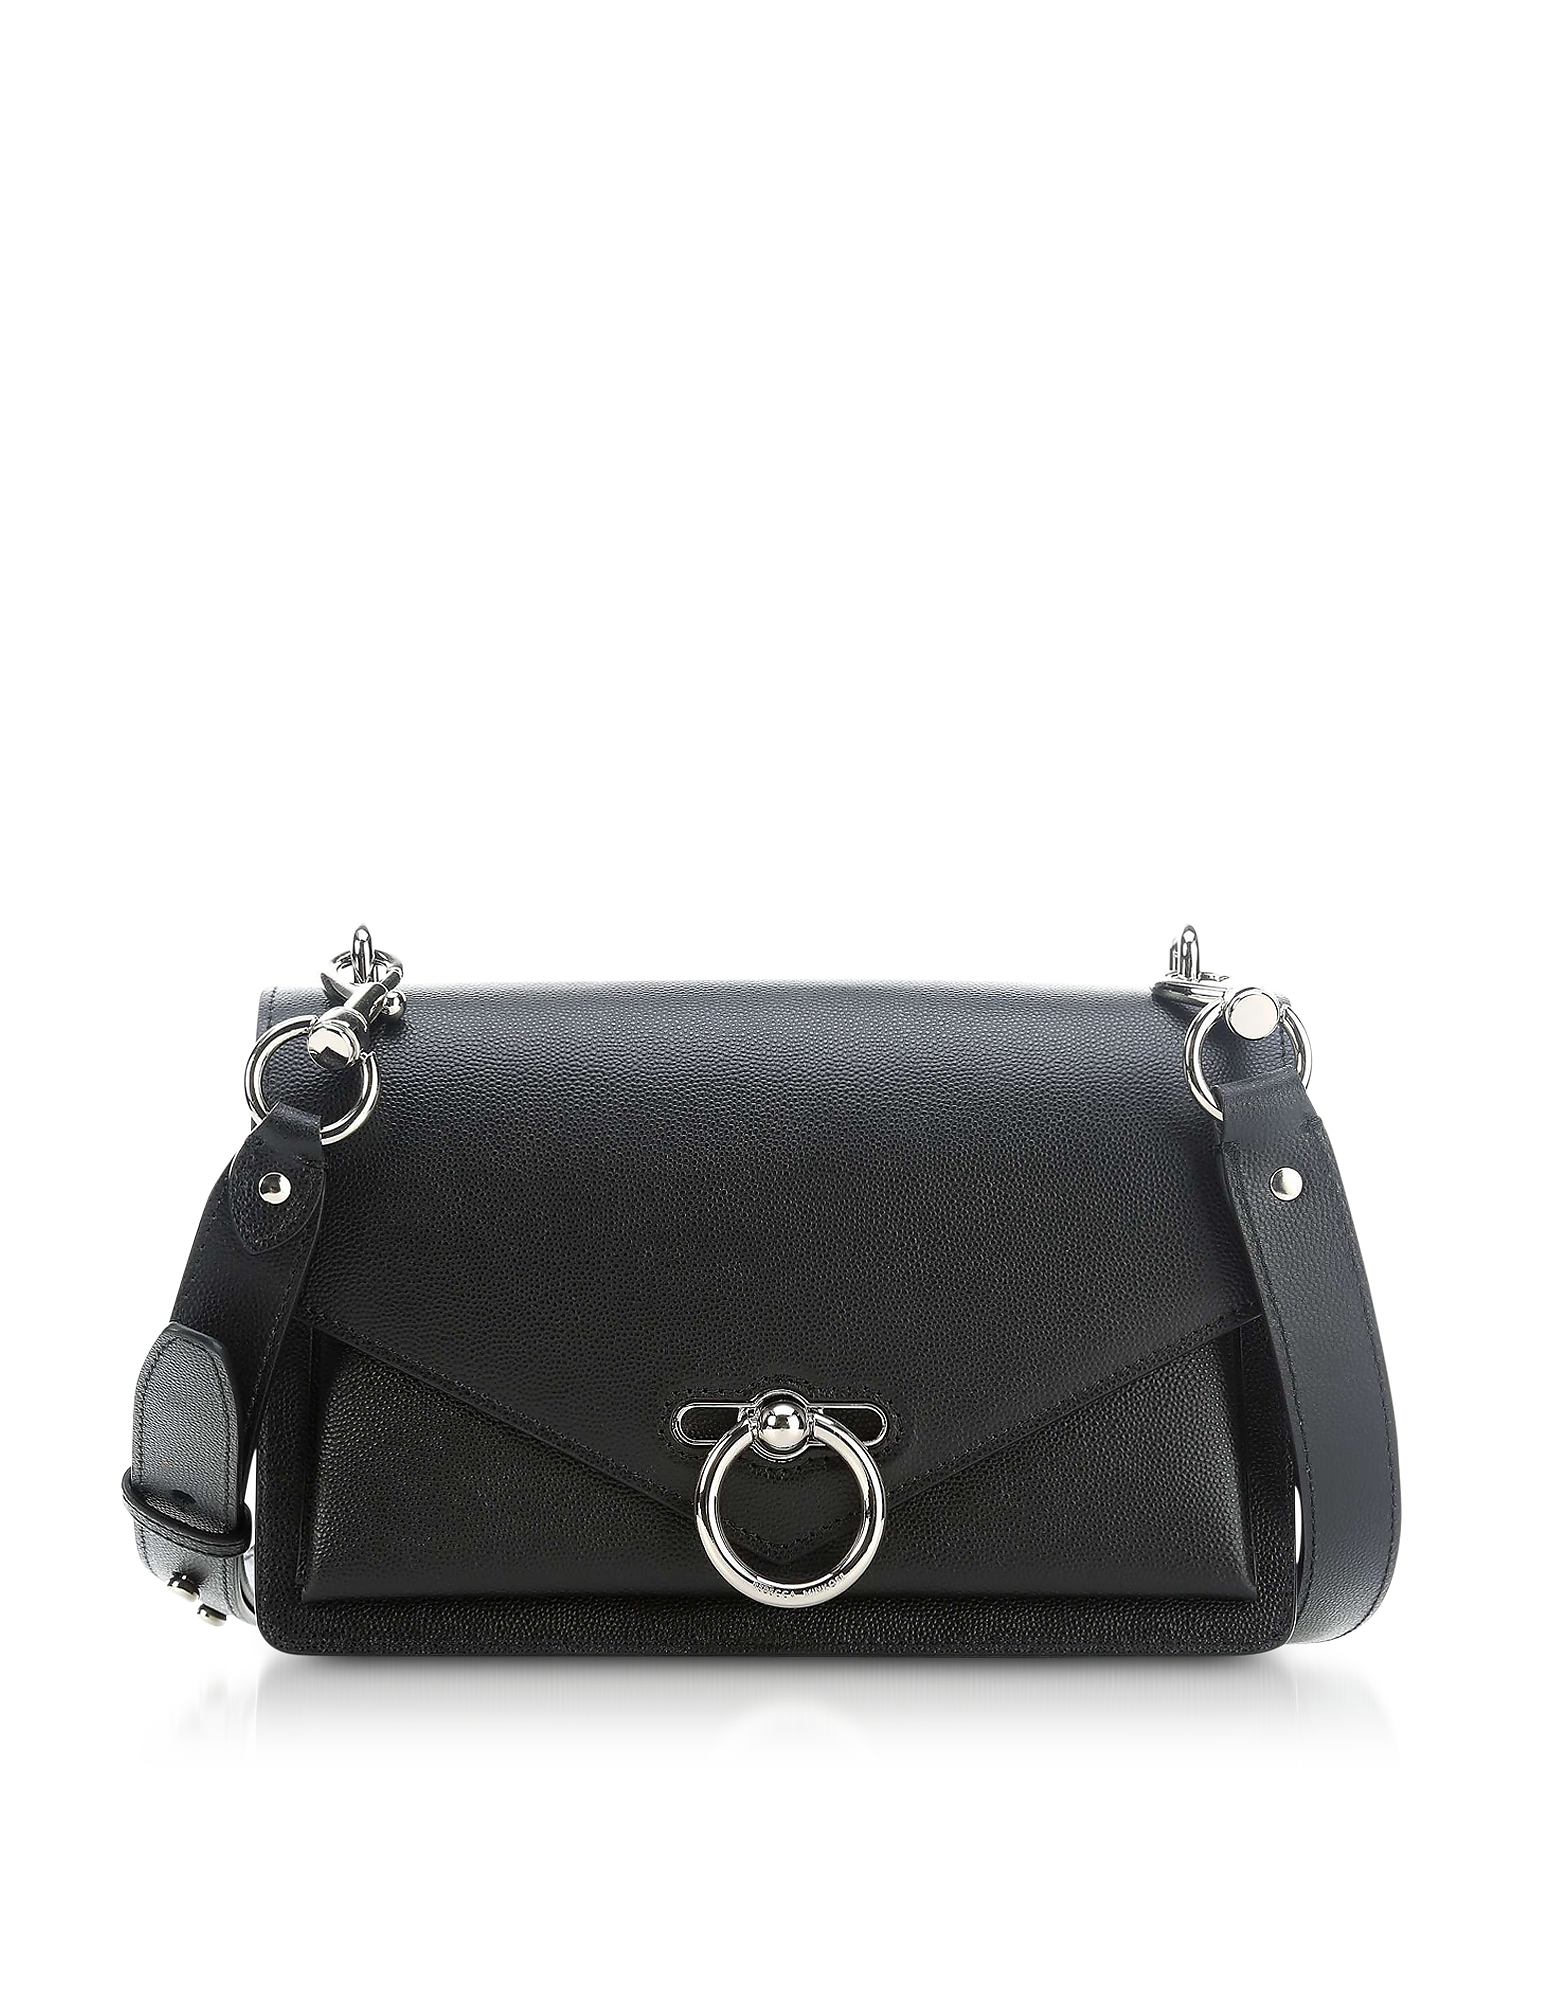 Black Caviar Leather Jean Medium Shoulder Bag